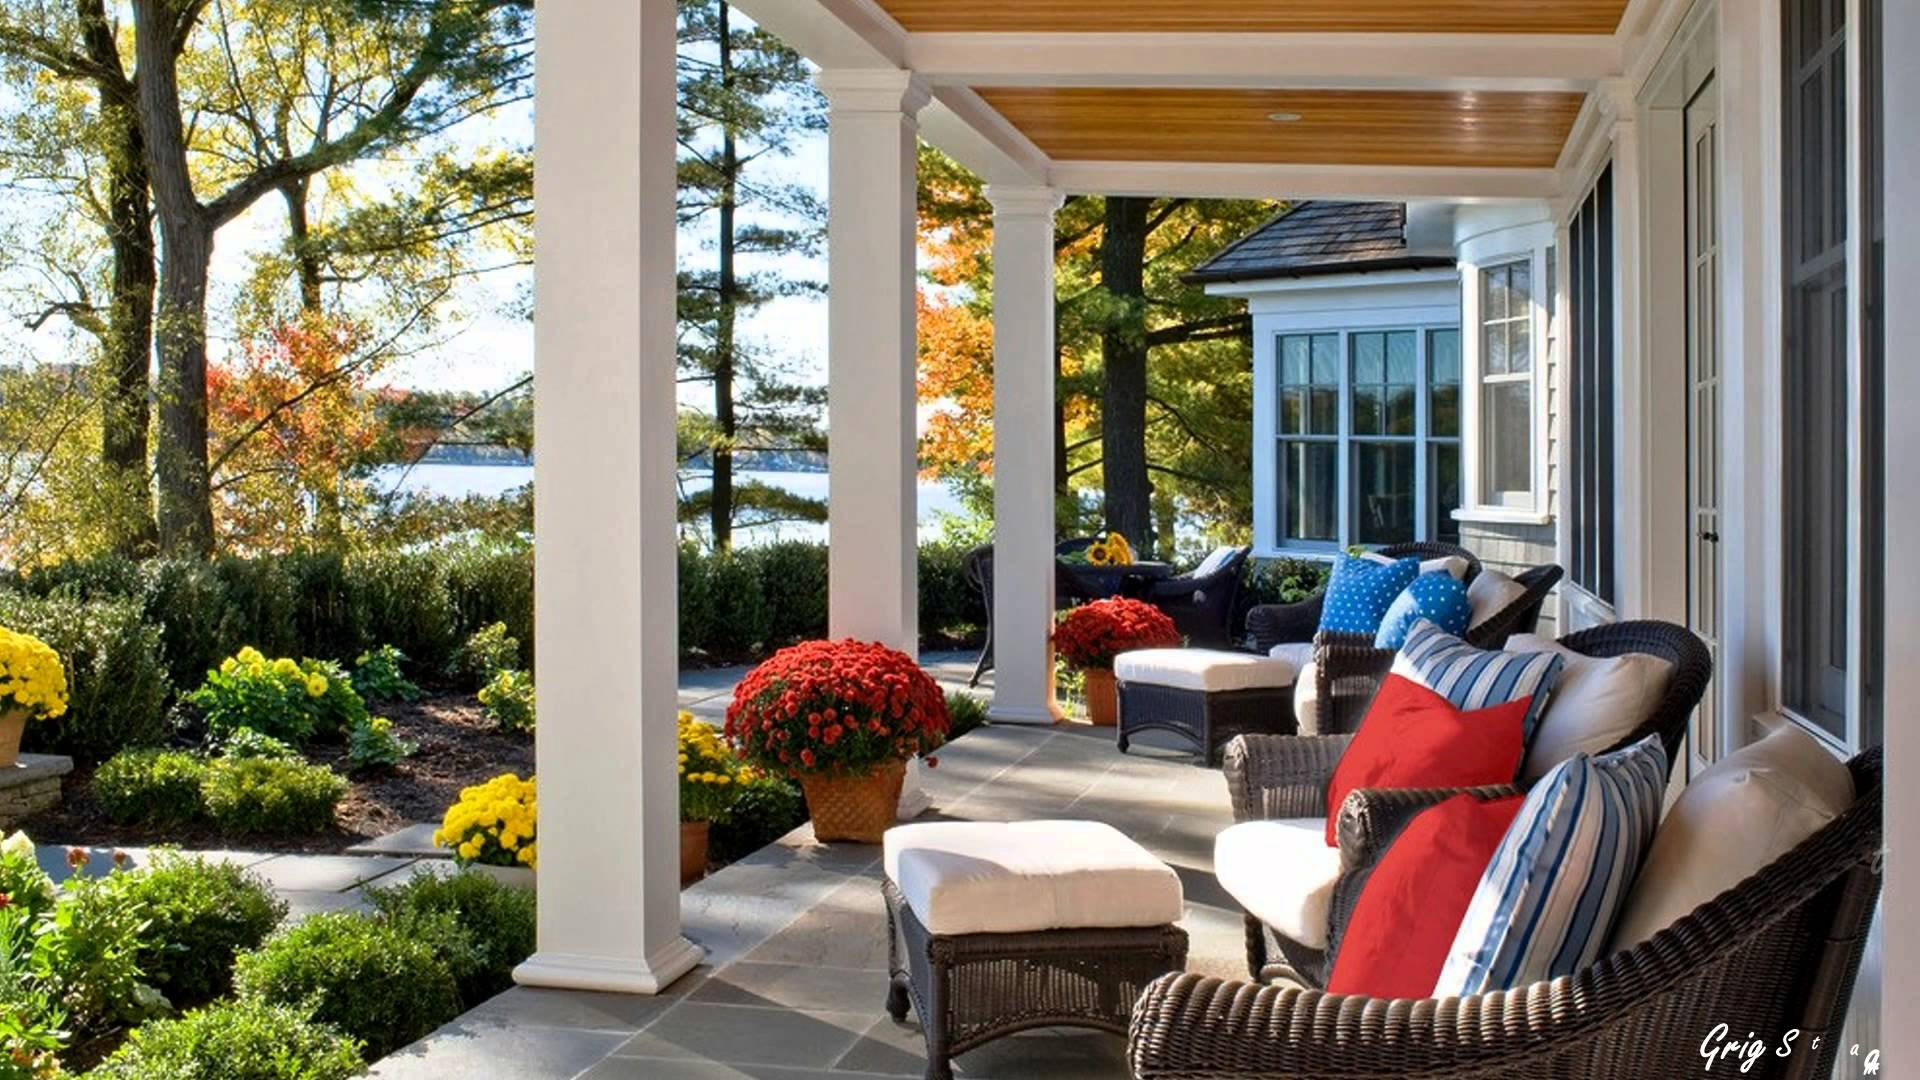 Back porch ideas also simple porch designs also enclosed patios images also screened in front porch decorating ideas